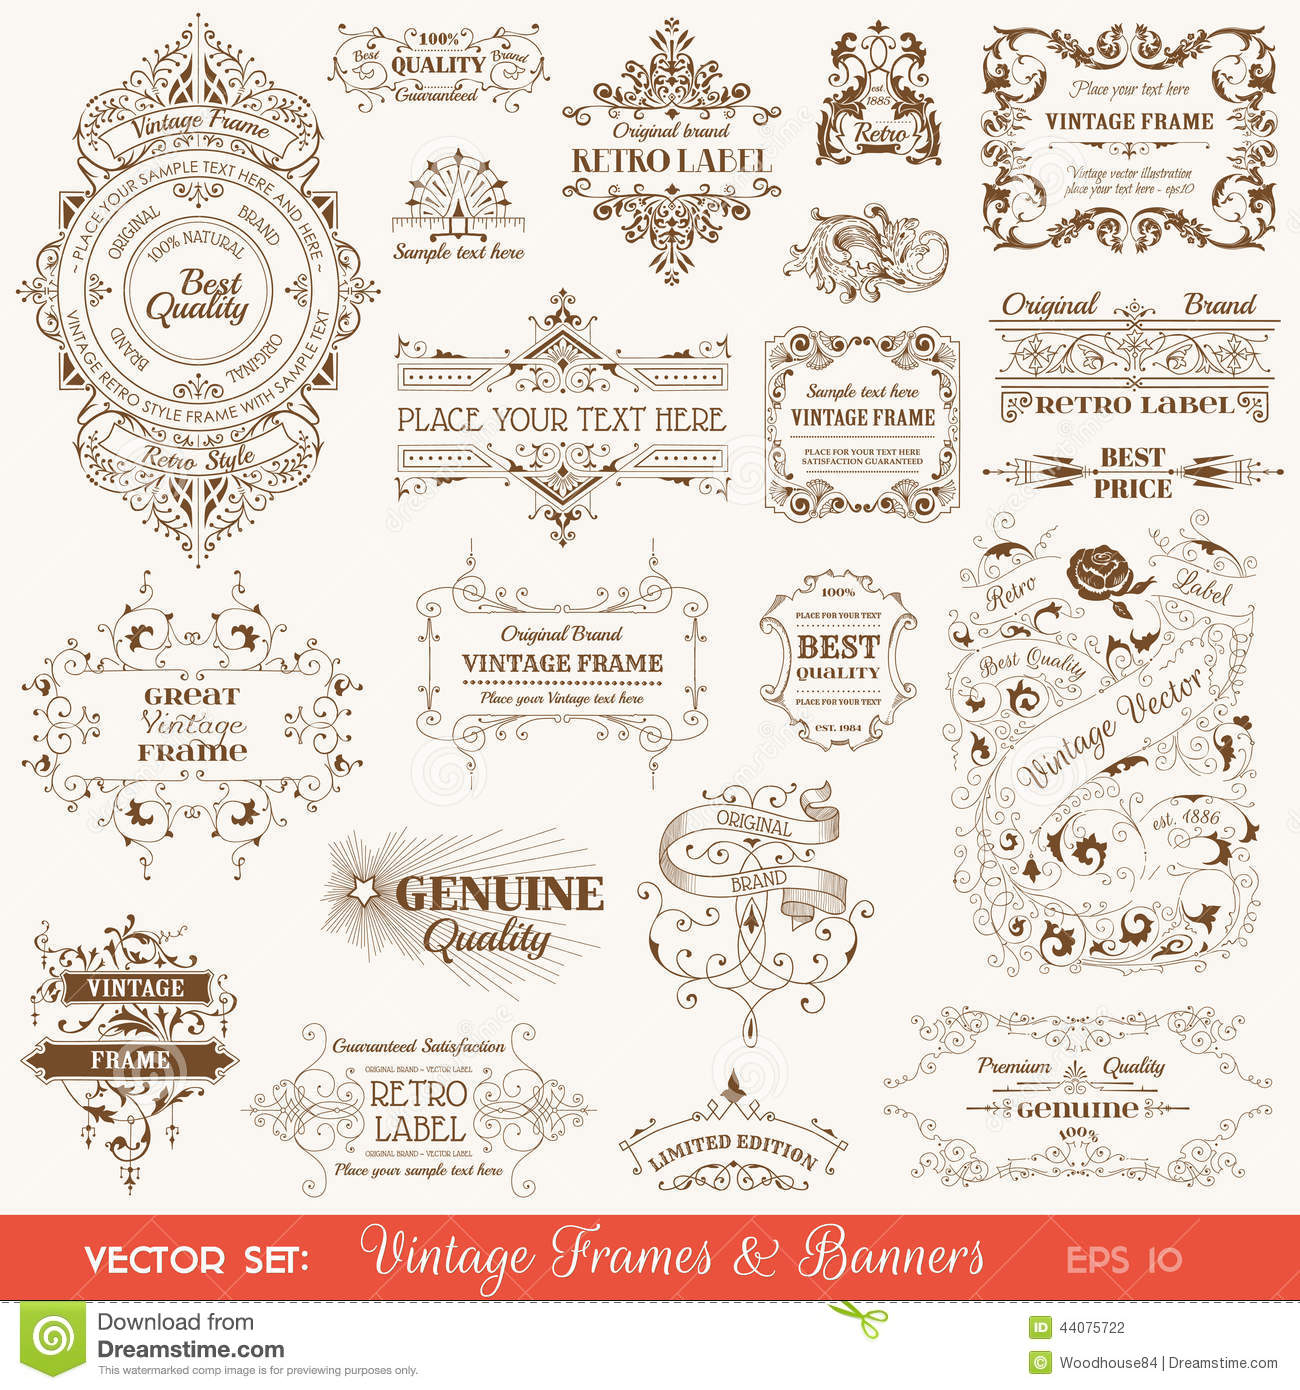 Vintage Frames and Banners, Calligraphic Elements